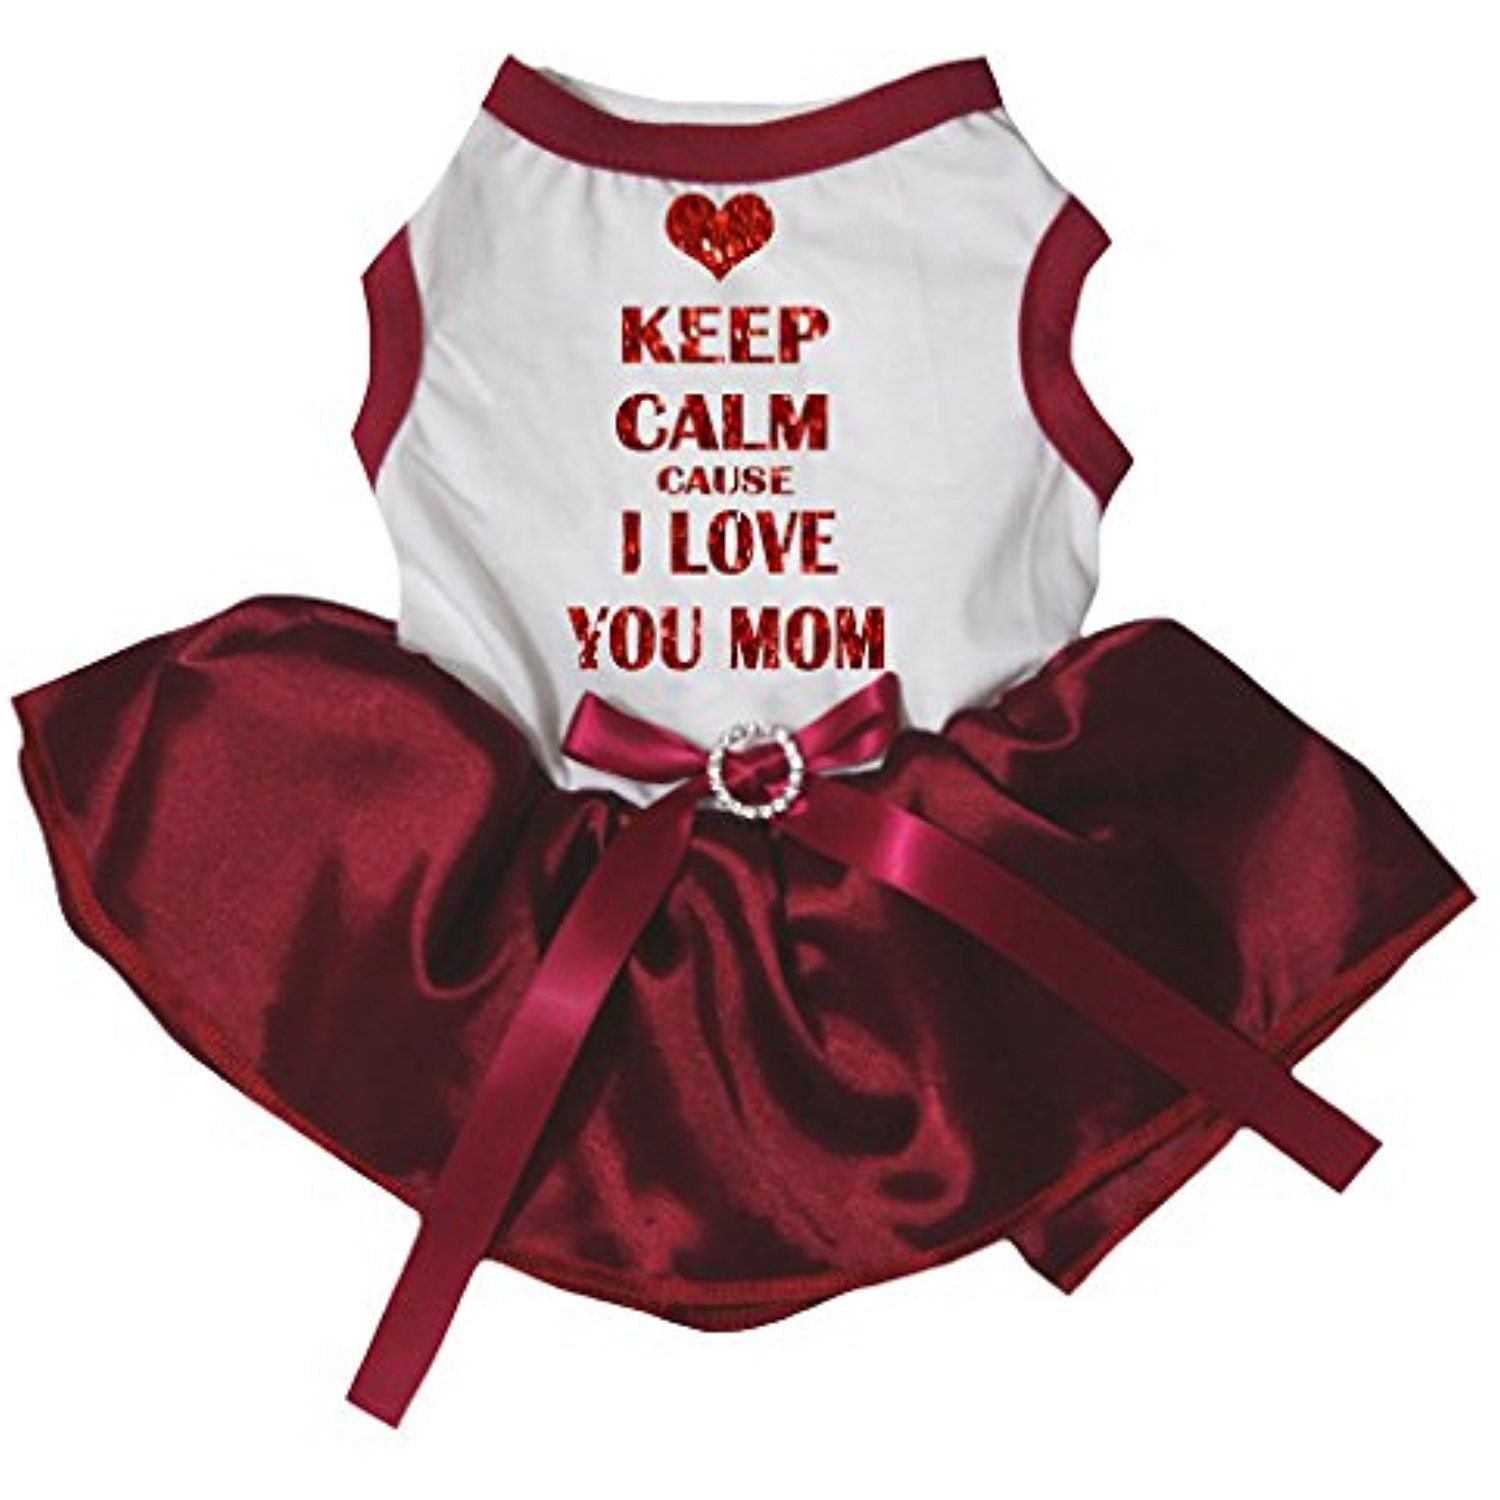 Petitebella Puppy Clothes Dog Dress Cause I Love You Mom White Top Red Tutu  (Medium) -- Click image for more details. (This is an affiliate link)   ... 49cec86b76d7